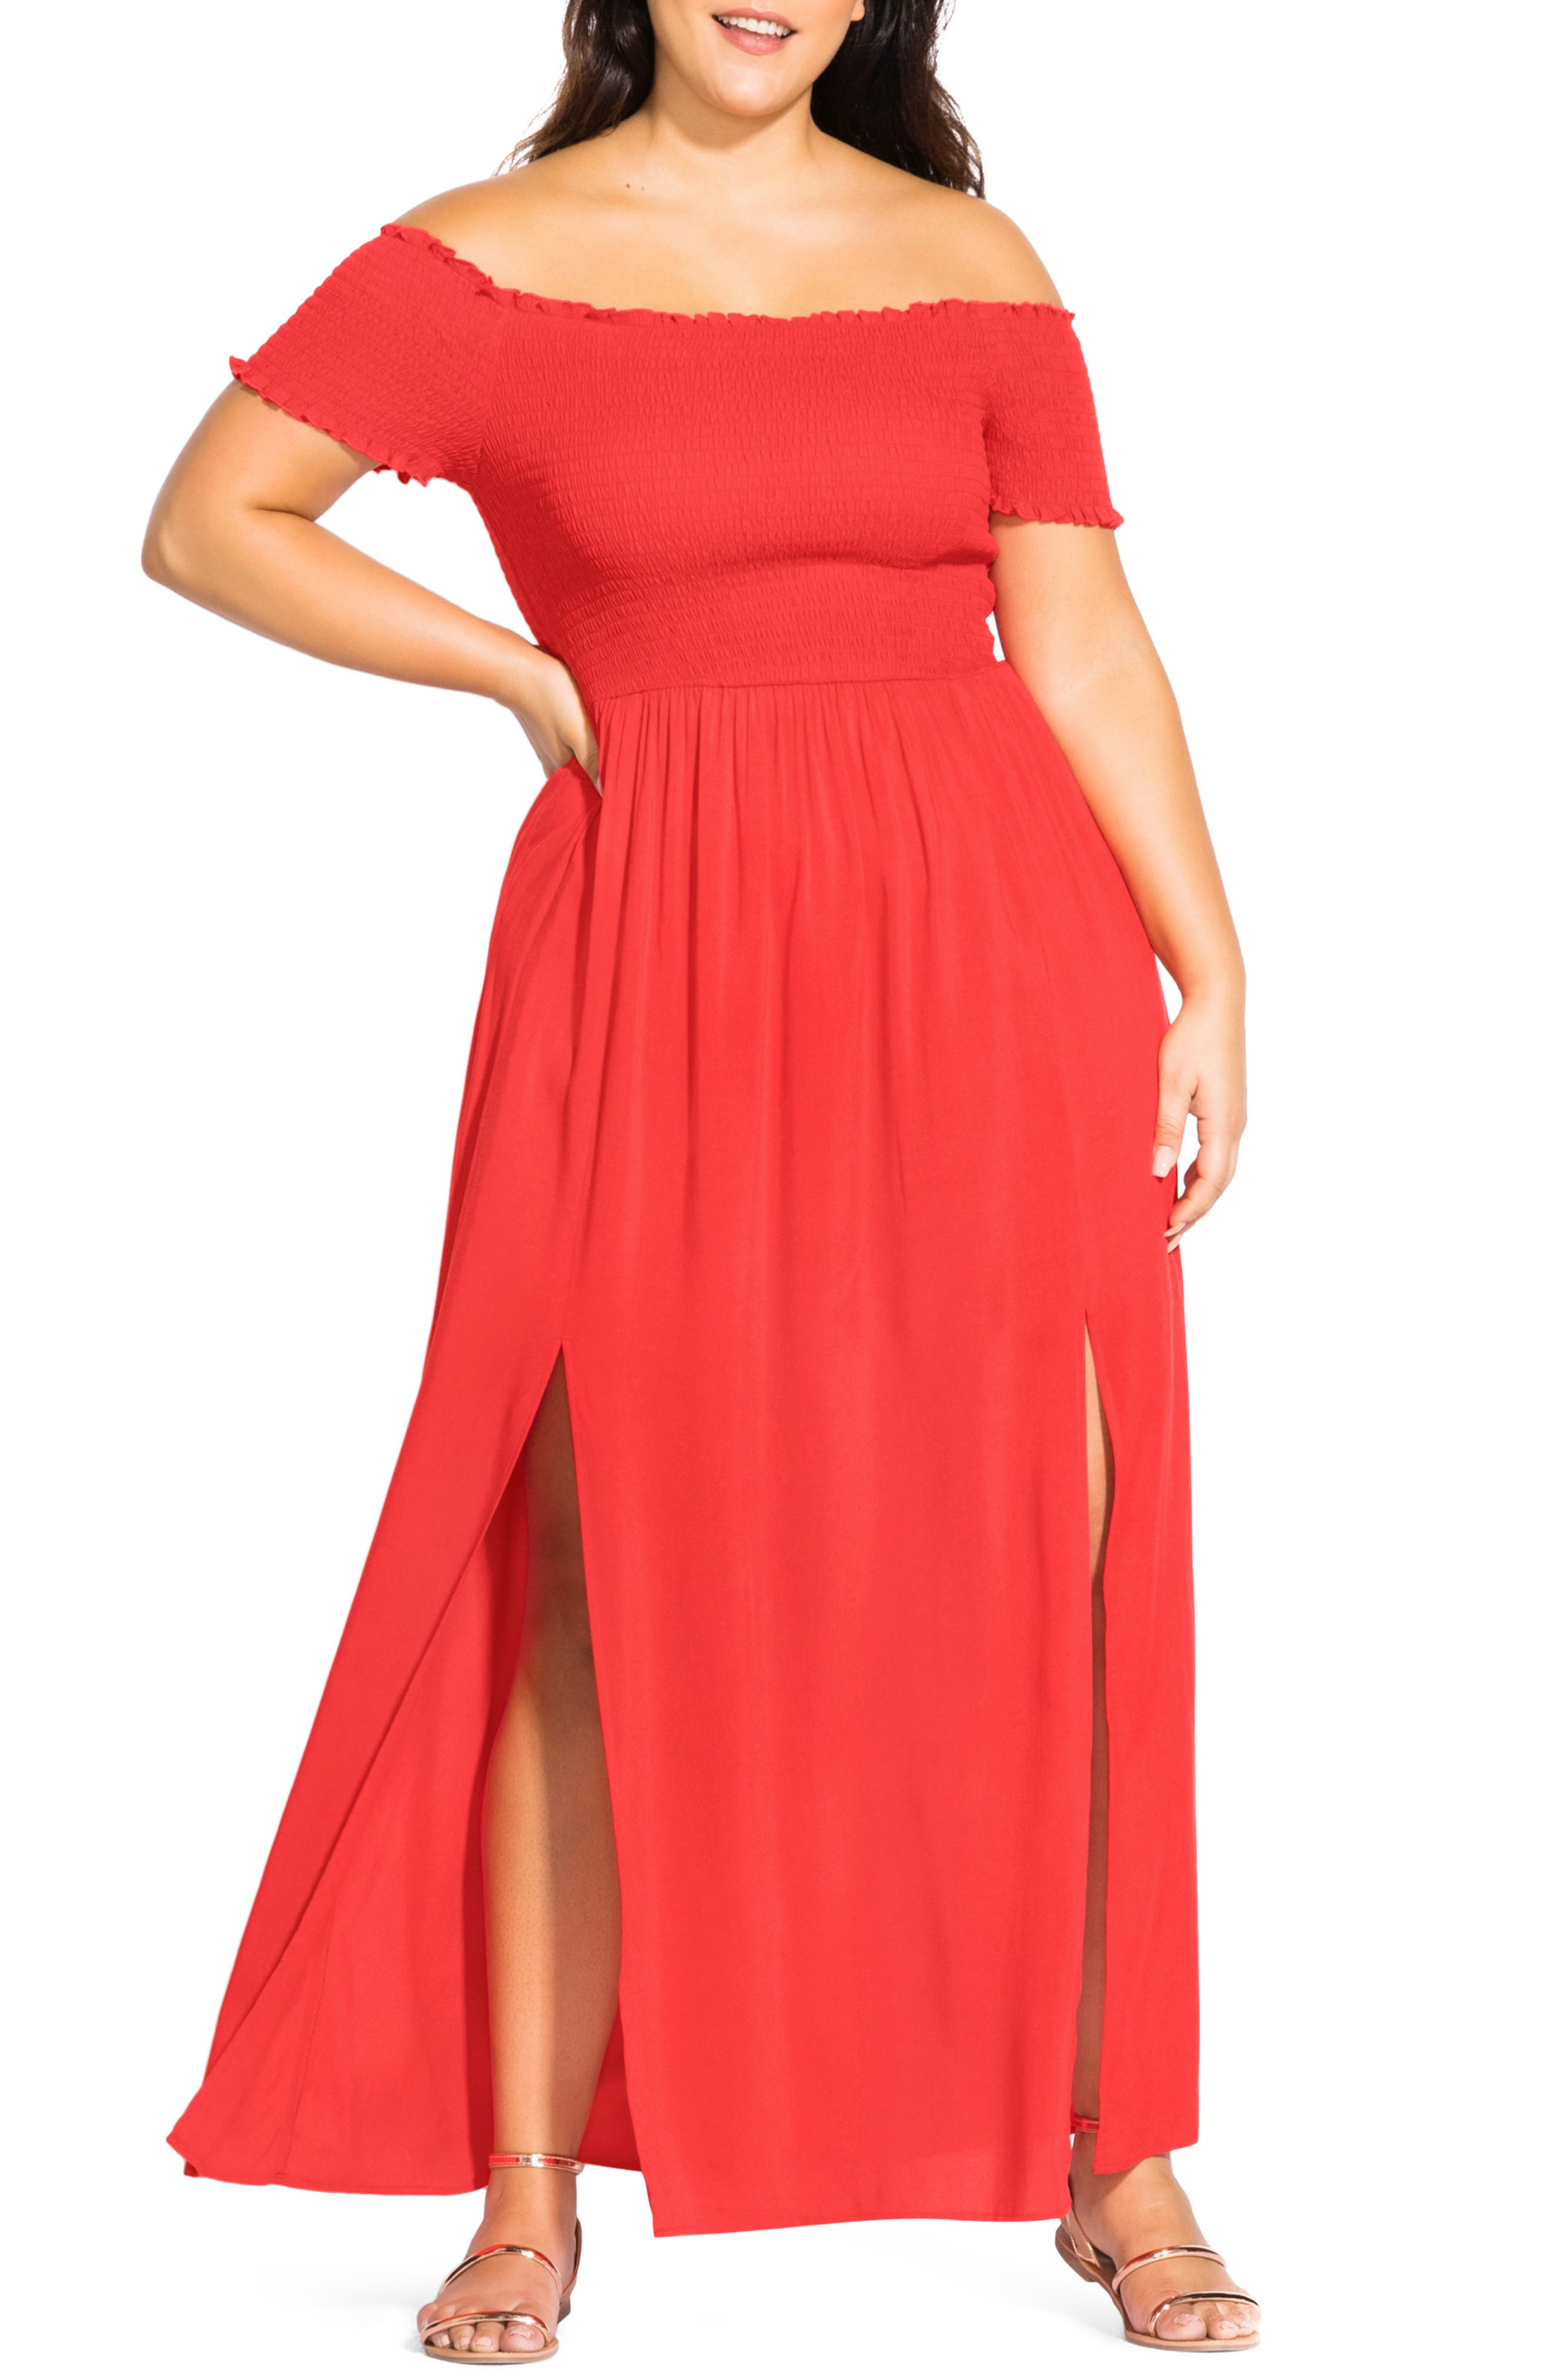 Plus Size City Chic Summer Passion Off The Shoulder Maxi Sundress, Red